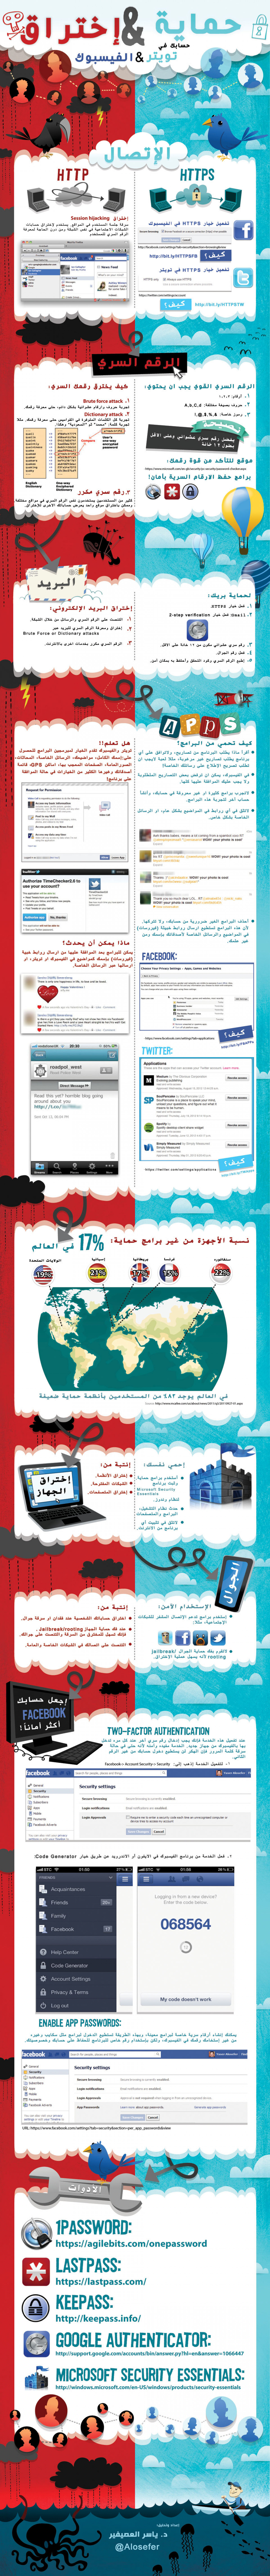 Secure and Hack your Facebook and Twitte (Arabic) Infographic